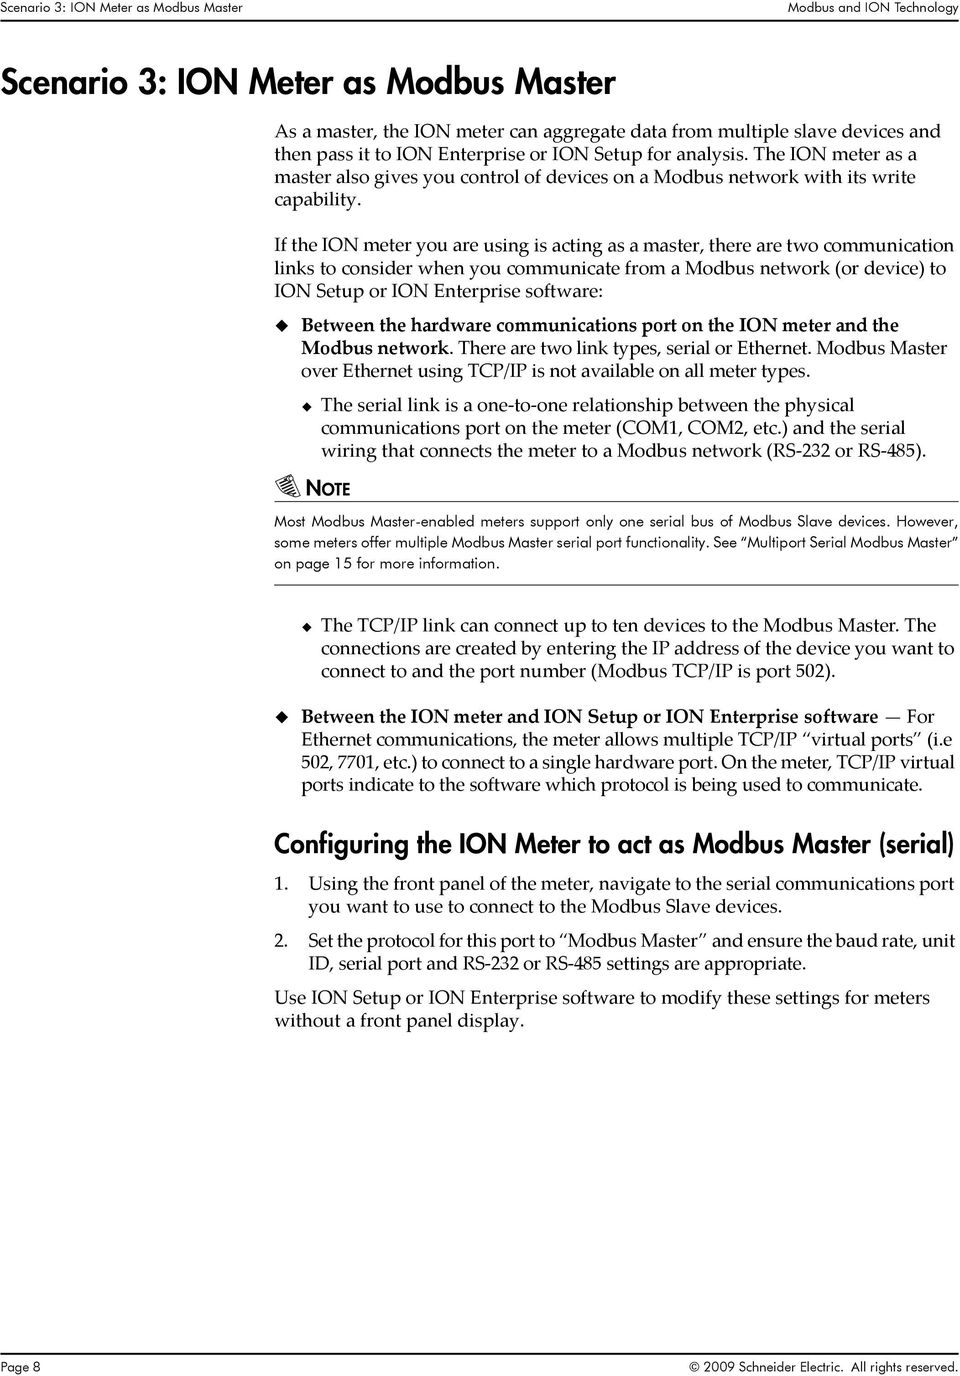 Modbus And Ion Technology Pdf Rs232 Rs485 Wiring If The Meter You Are Using Is Acting As A Master There Two